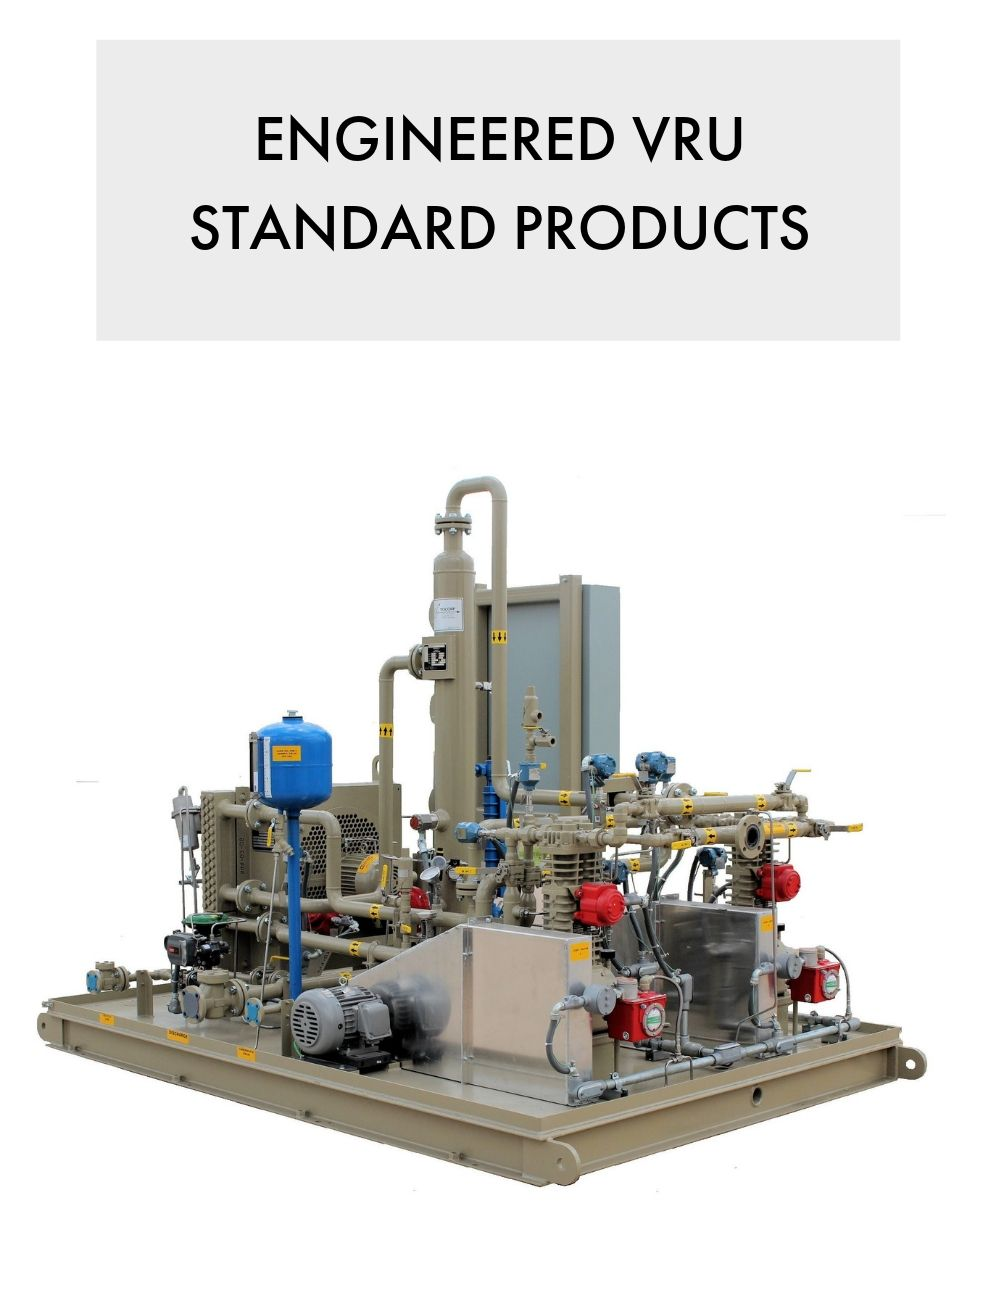 TESCORP Standard Engineered Products promo image